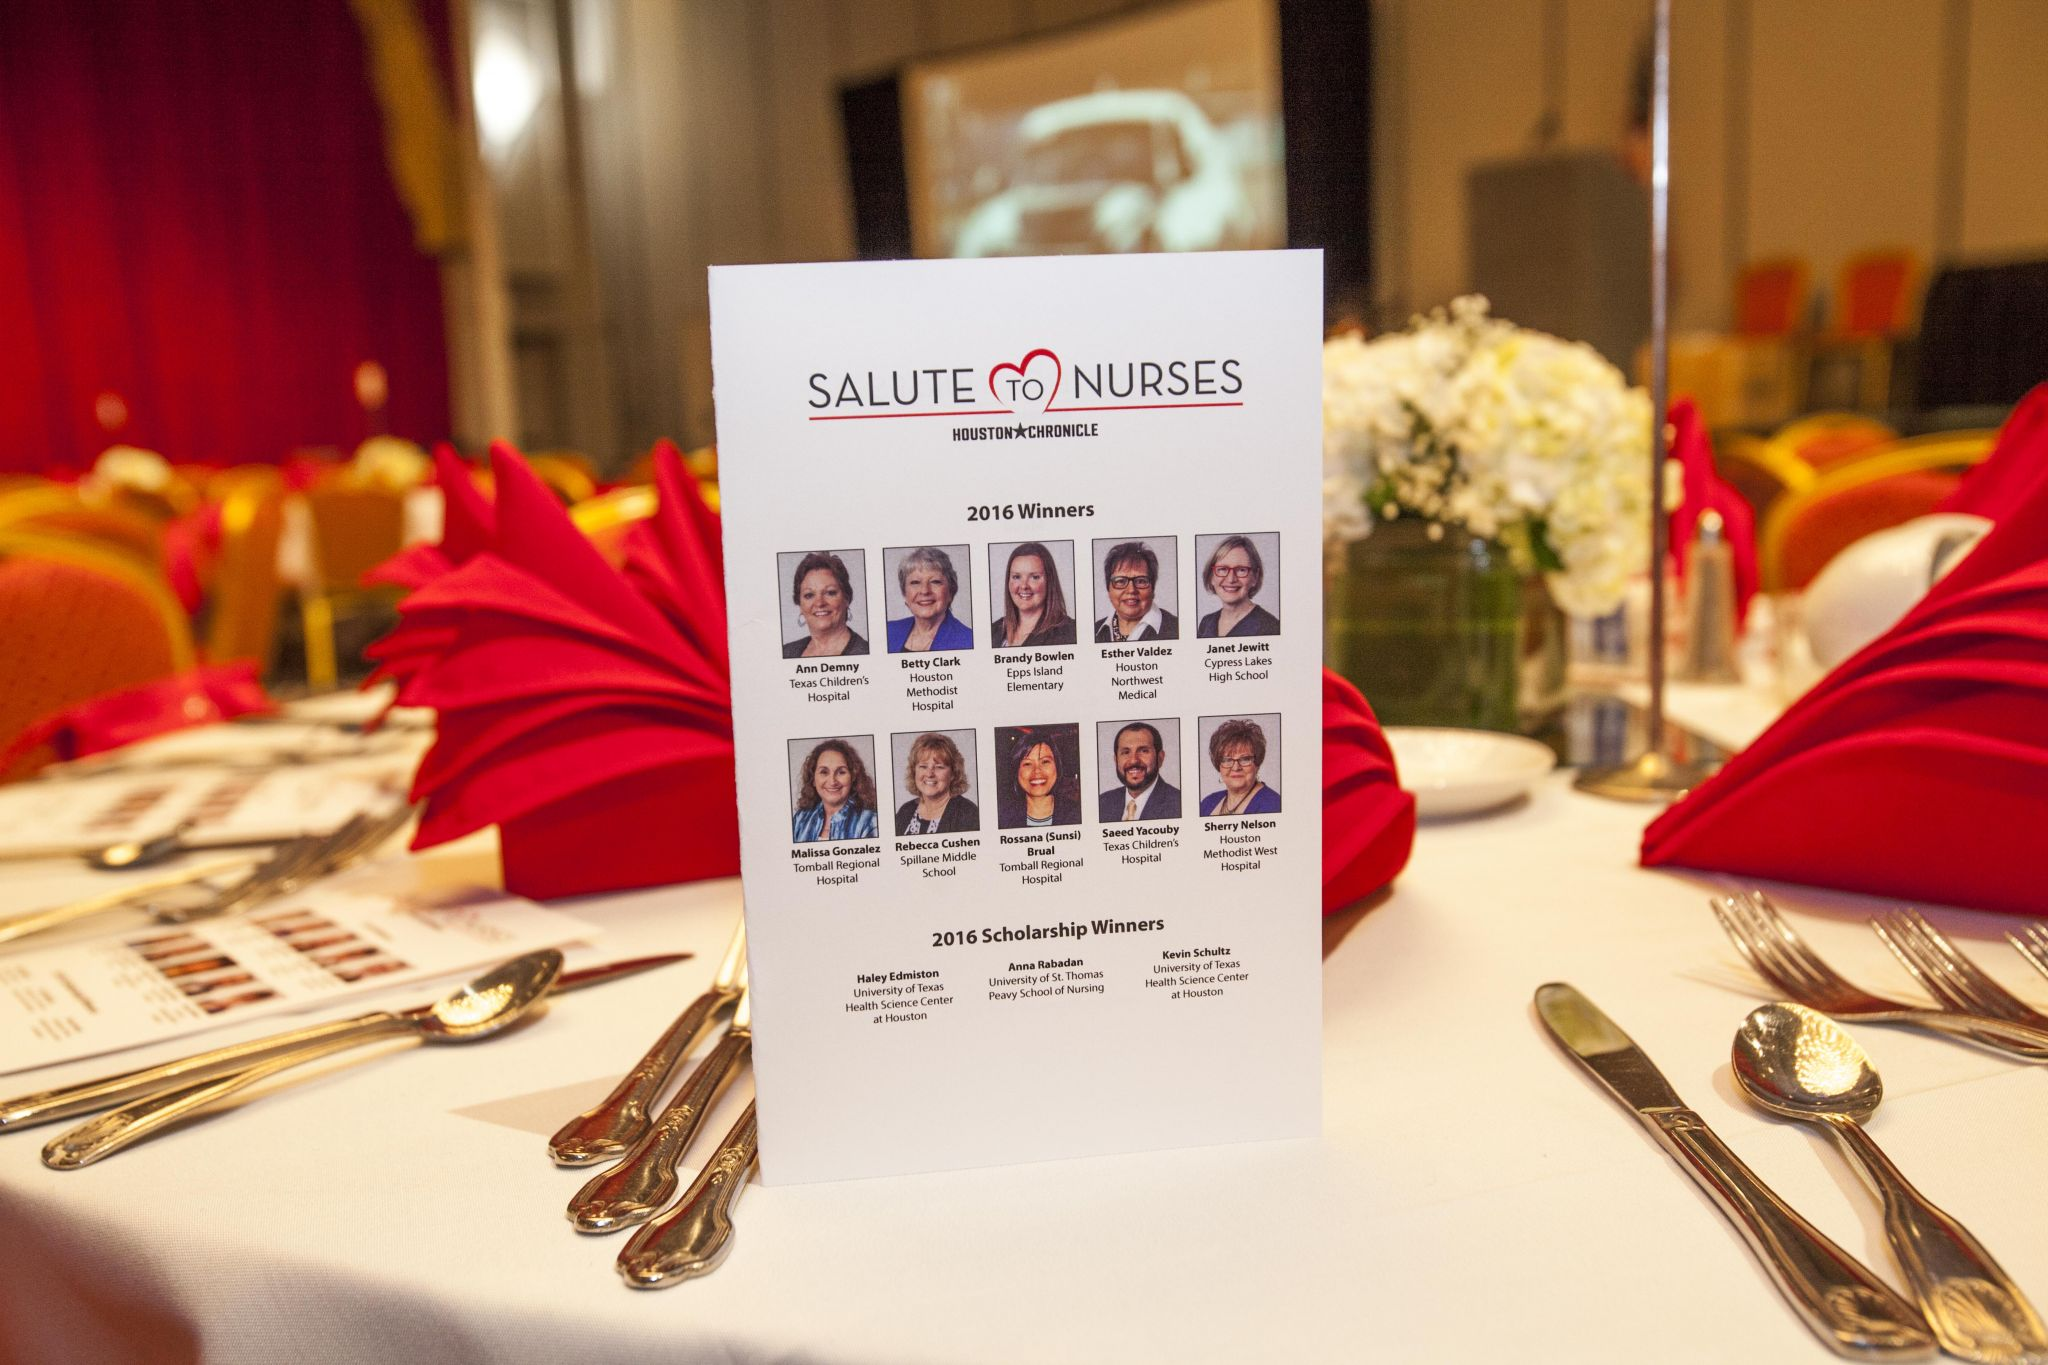 Salute to nurses 2016 top 10 nurses earn deserved recognition salute to nurses 2016 top 10 nurses earn deserved recognition houston chronicle 1betcityfo Images